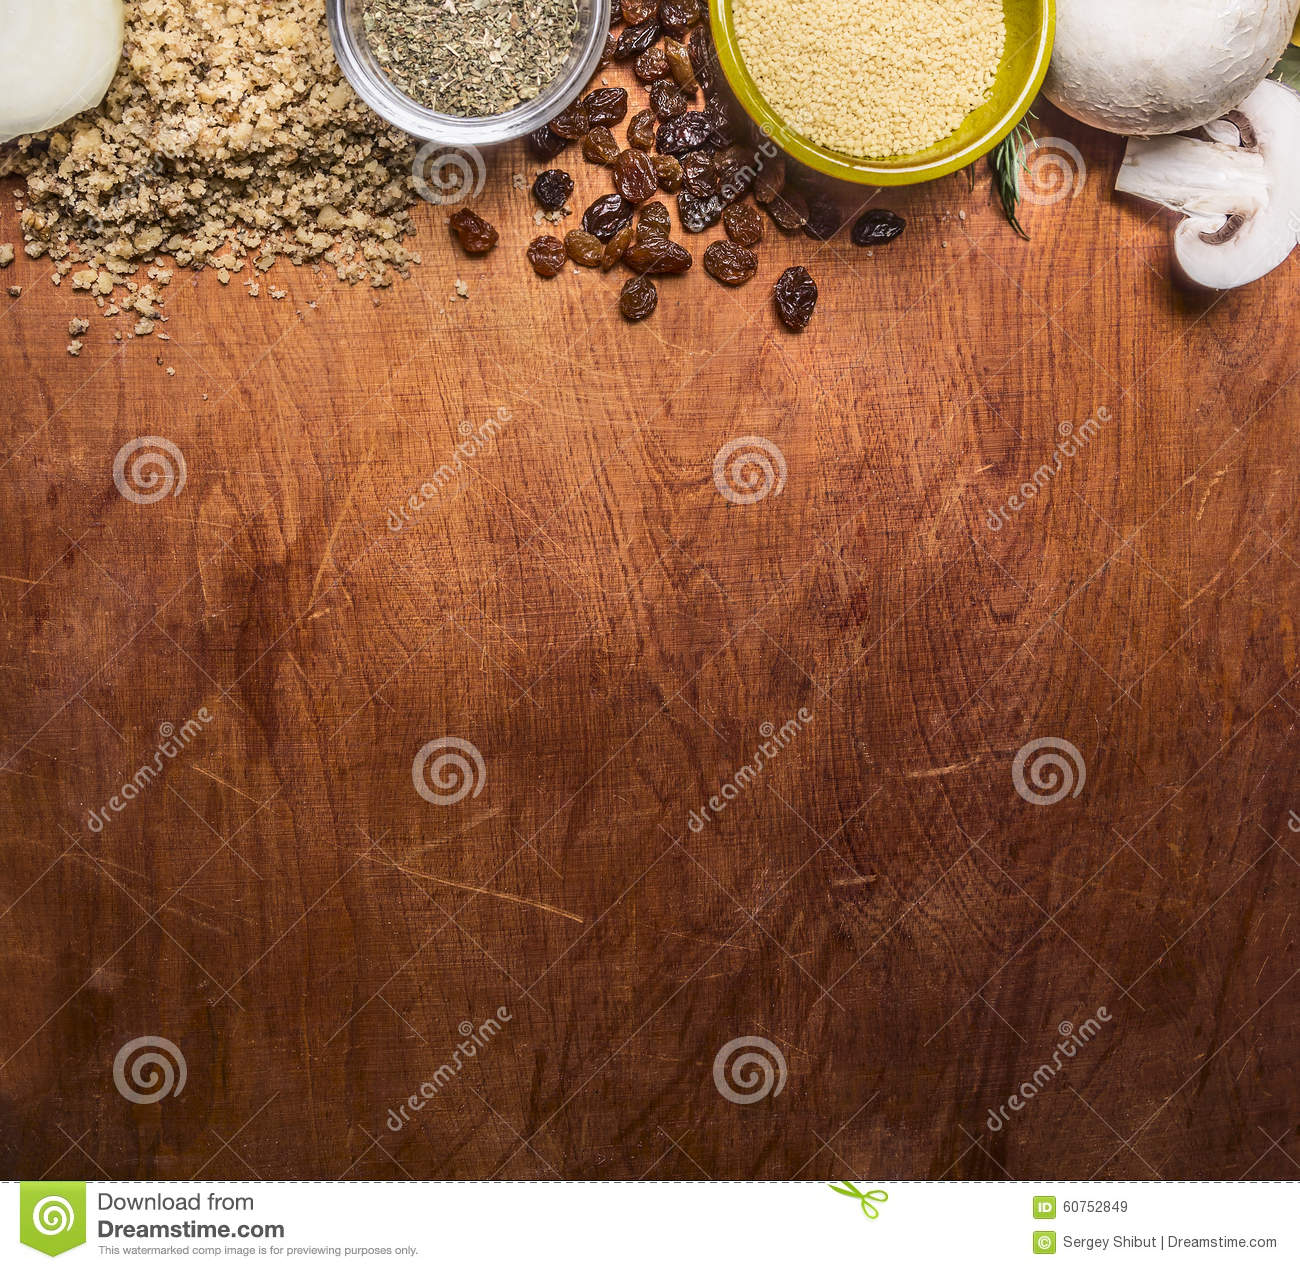 Download Border With Walnuts Raisins Mushrooms Couscous Seasoning On Wooden Rustic Background Close Up